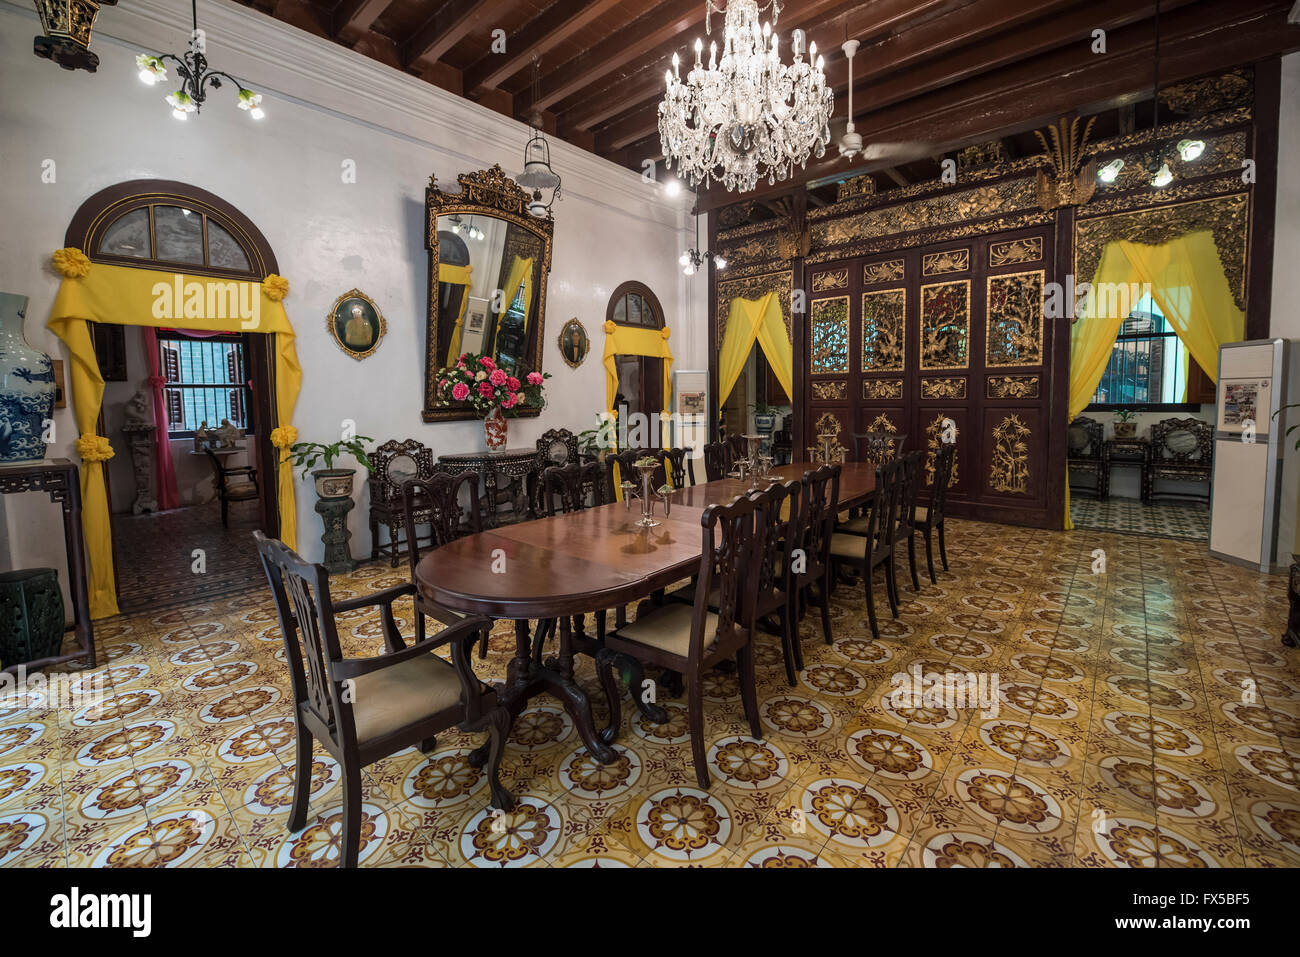 Main Dining Room in the Peranakan Mansion, George Town, Penang - Stock Image